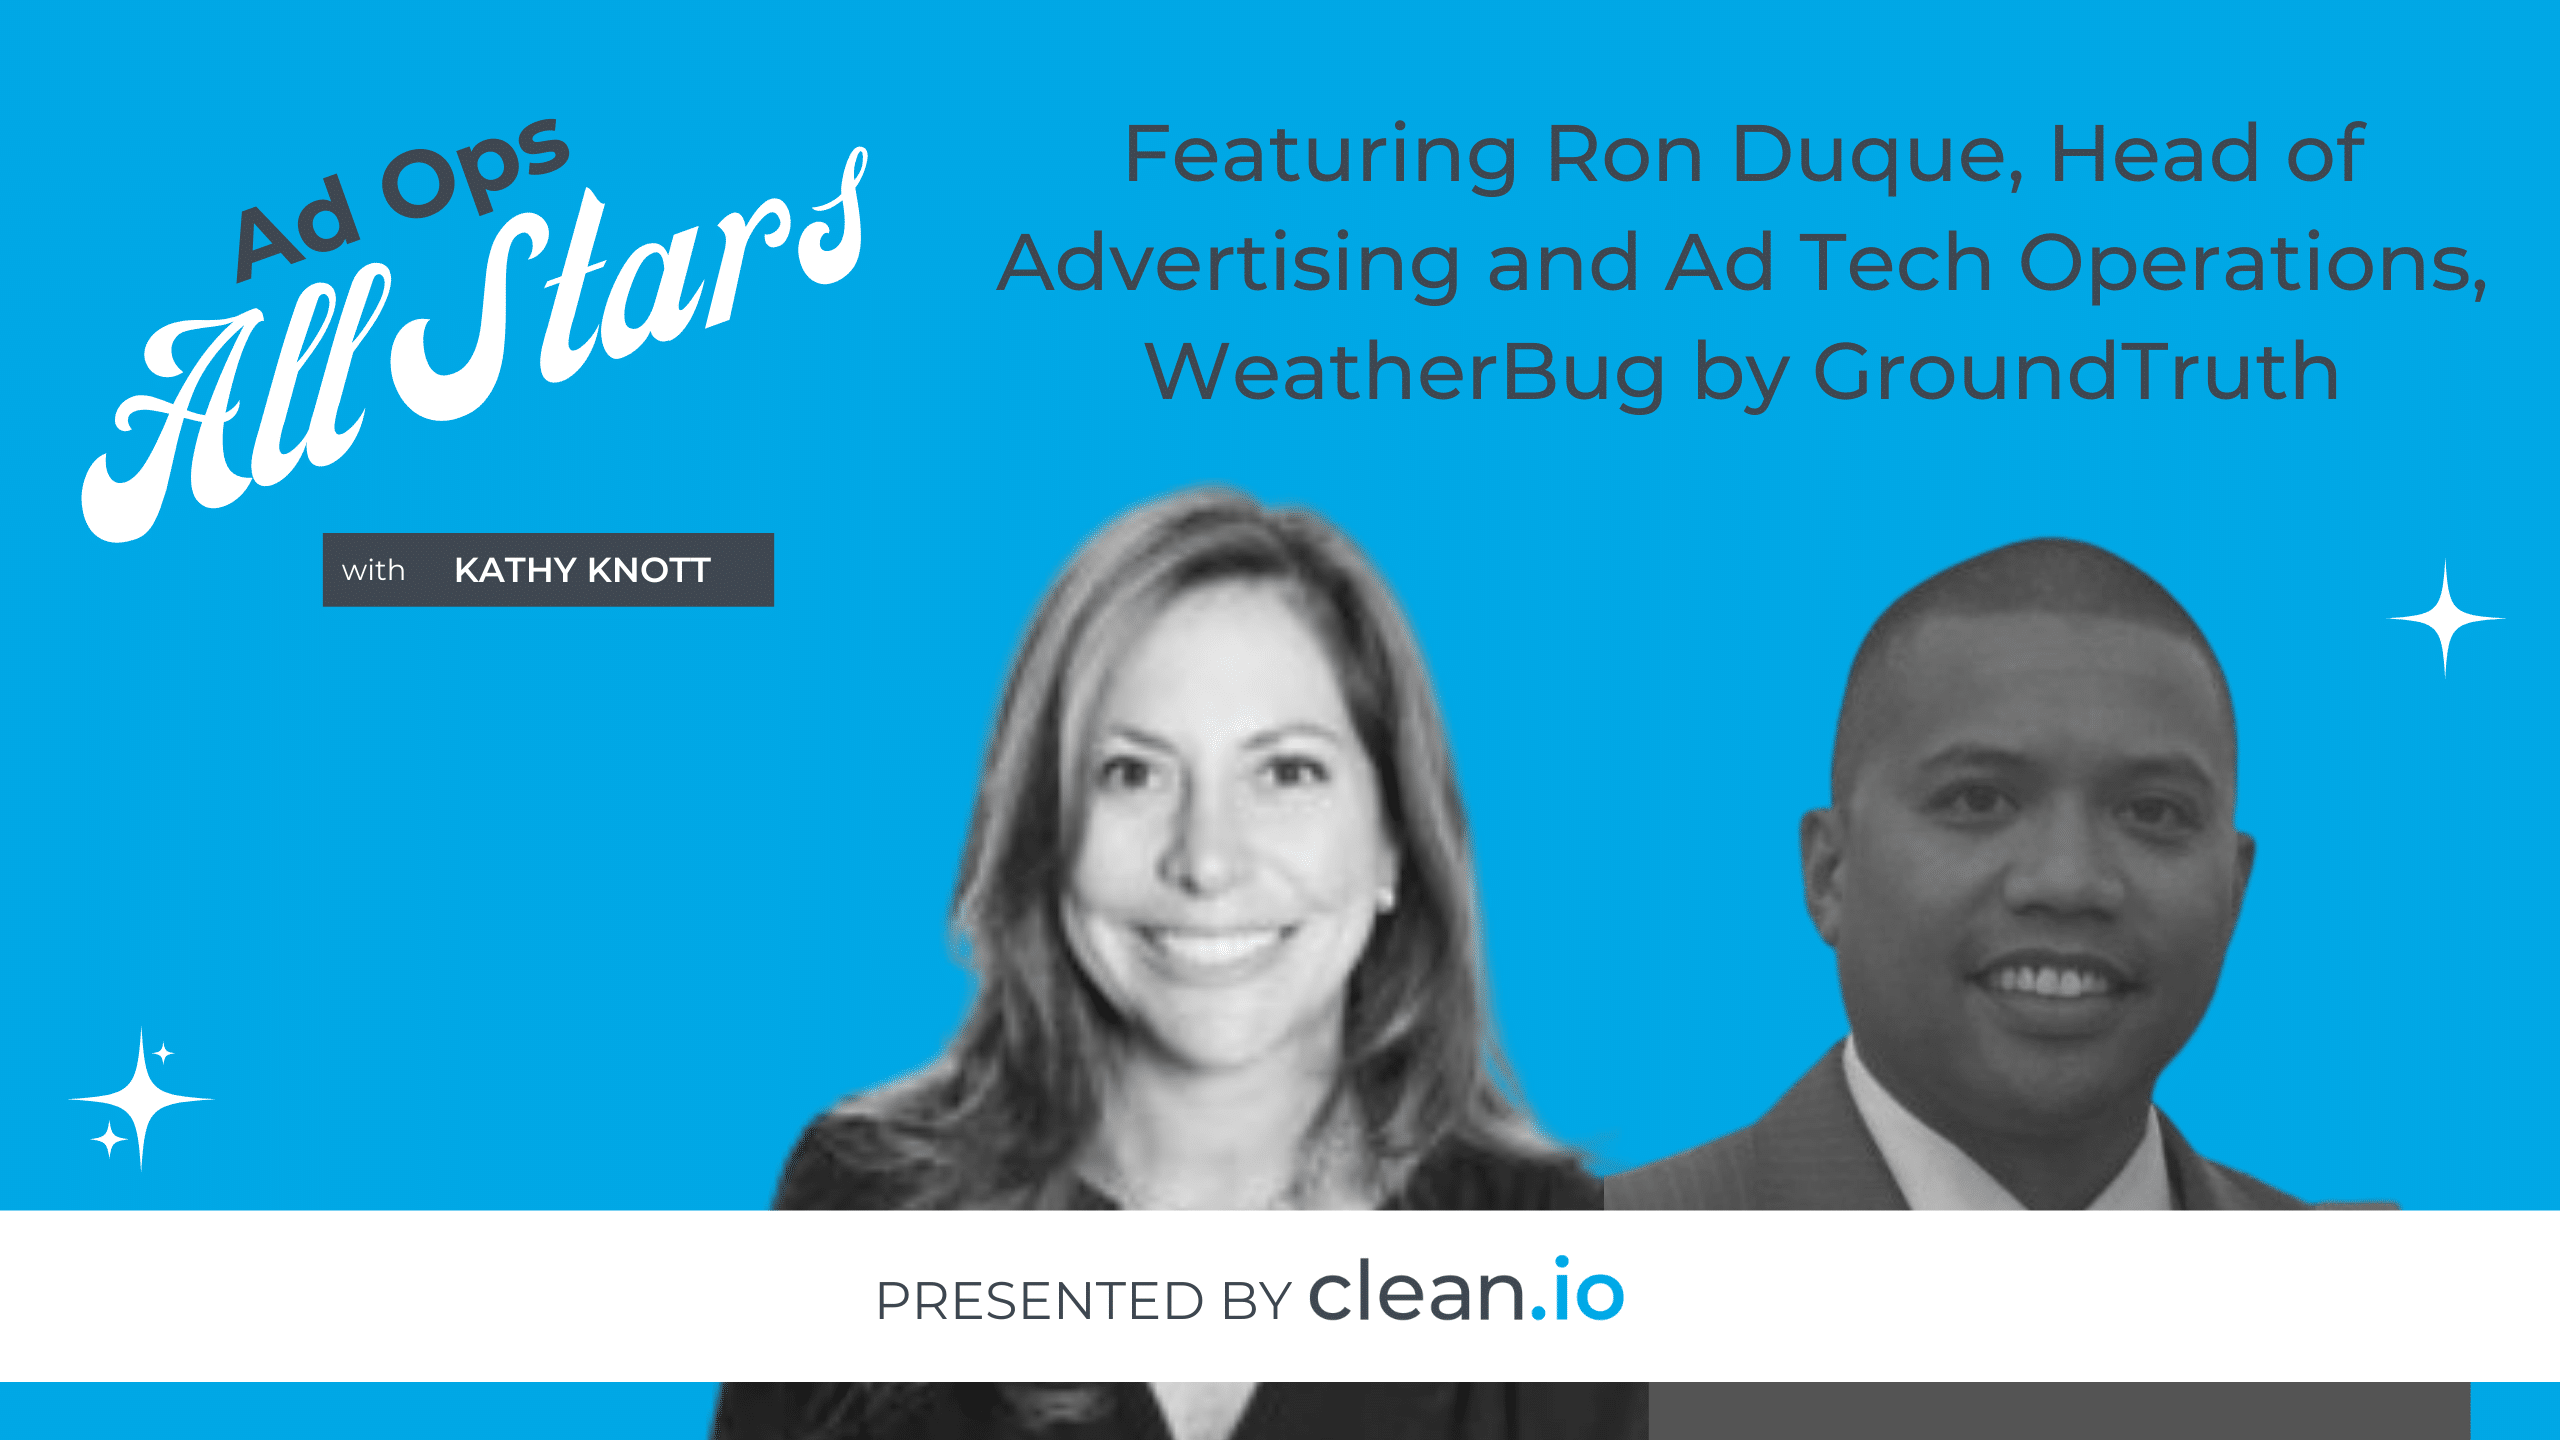 Ad Ops All Stars: Ron Duque, WeatherBug